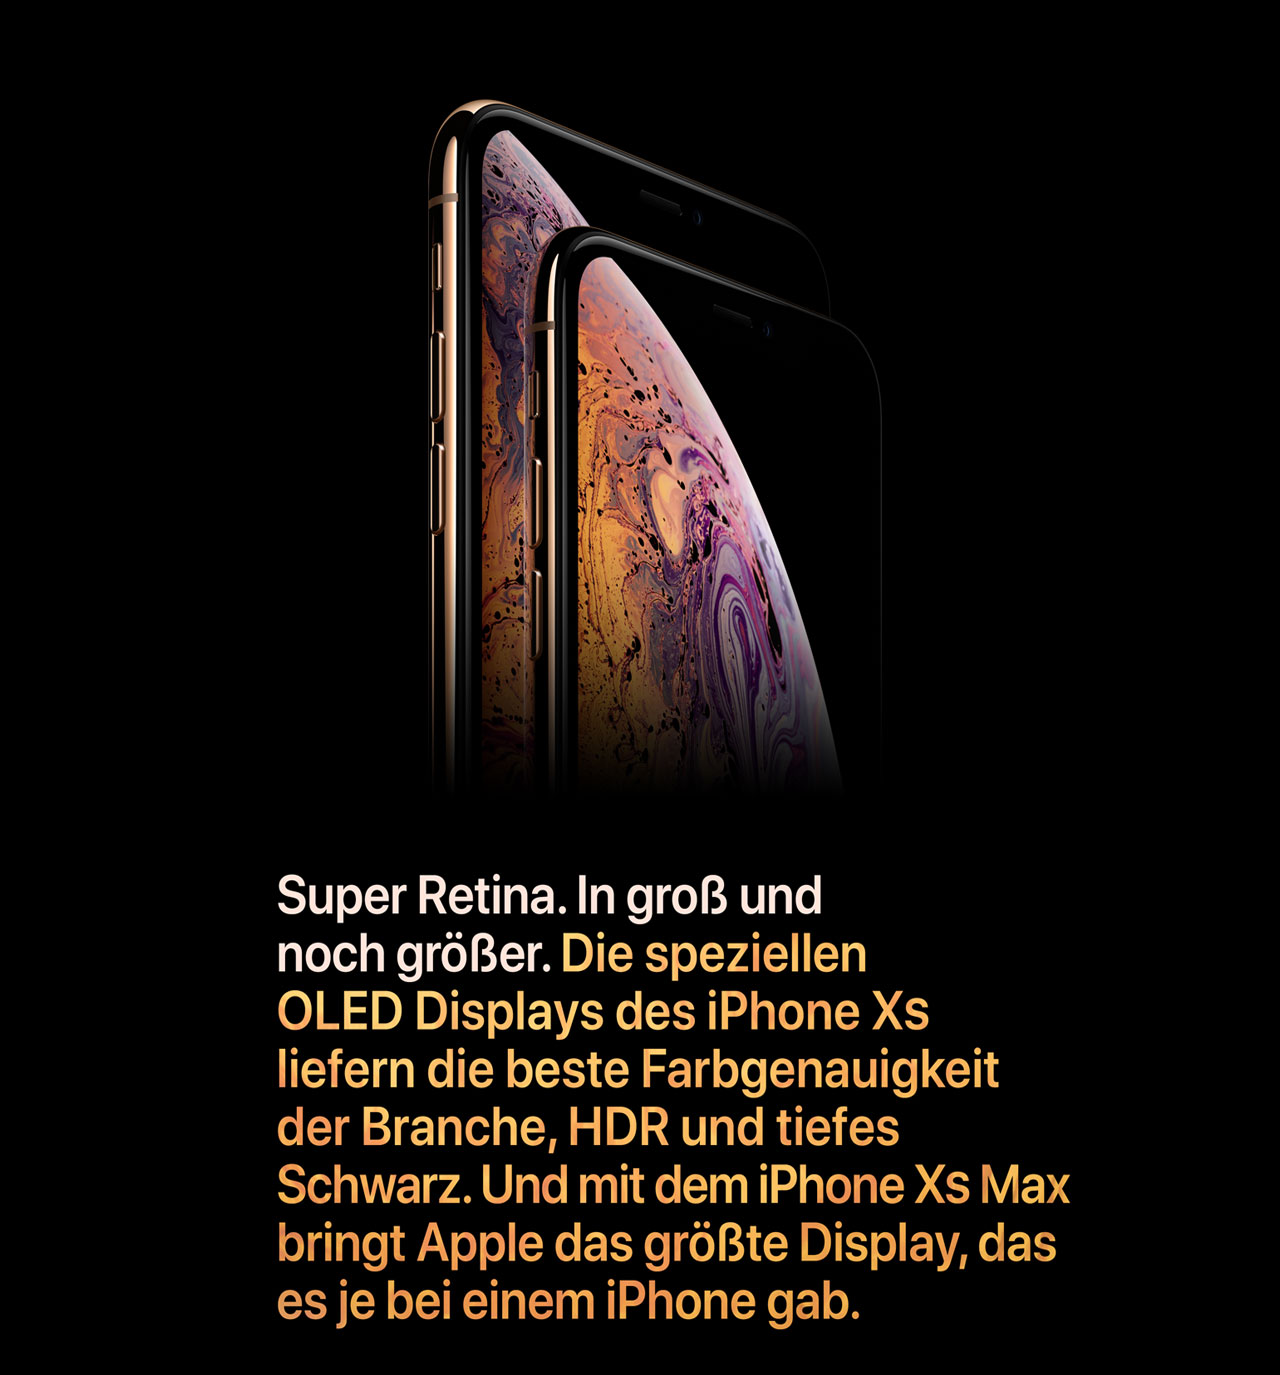 Super Retina Display